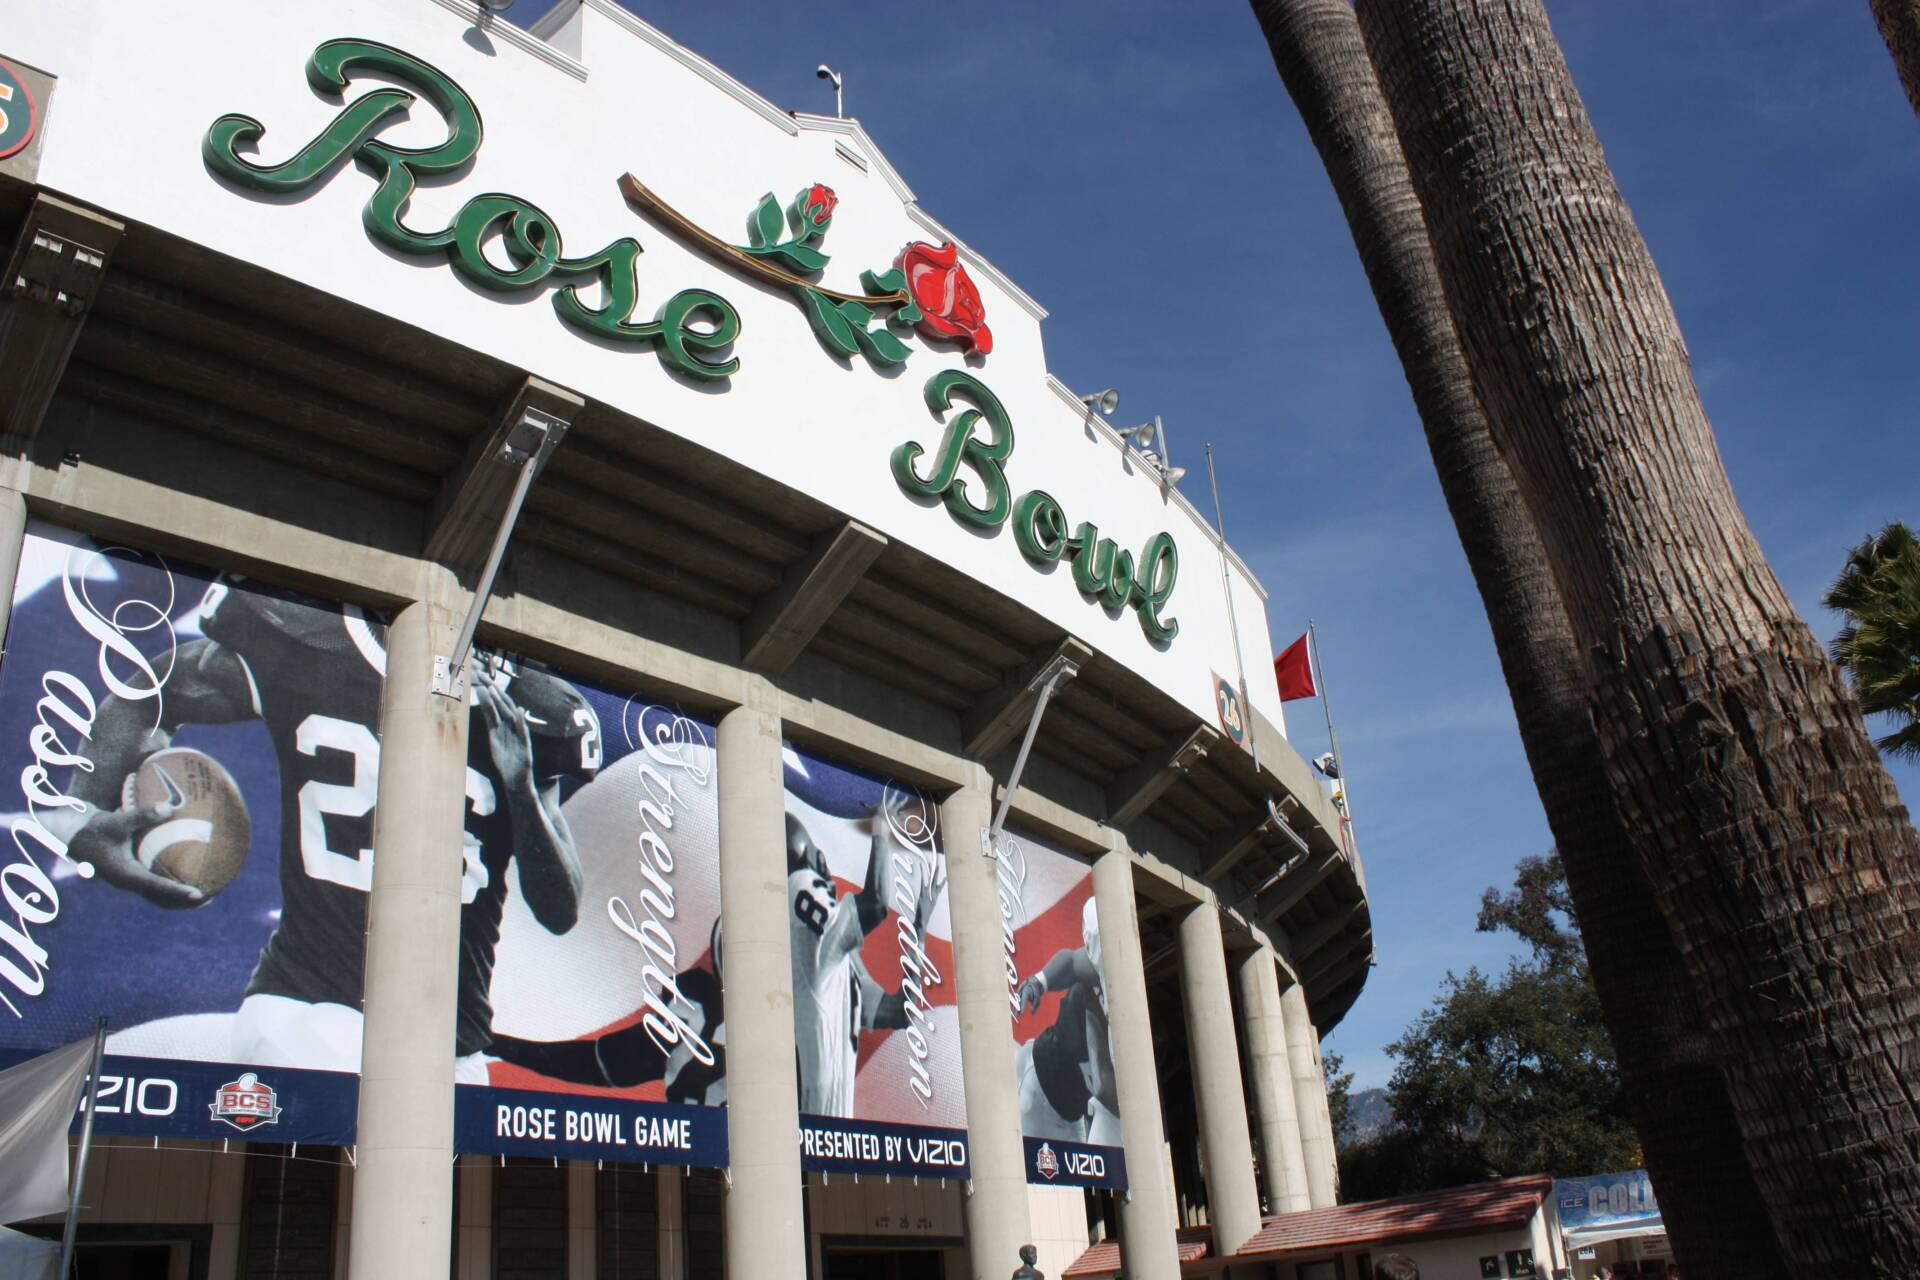 Rose Bowl Concrete Evaluation